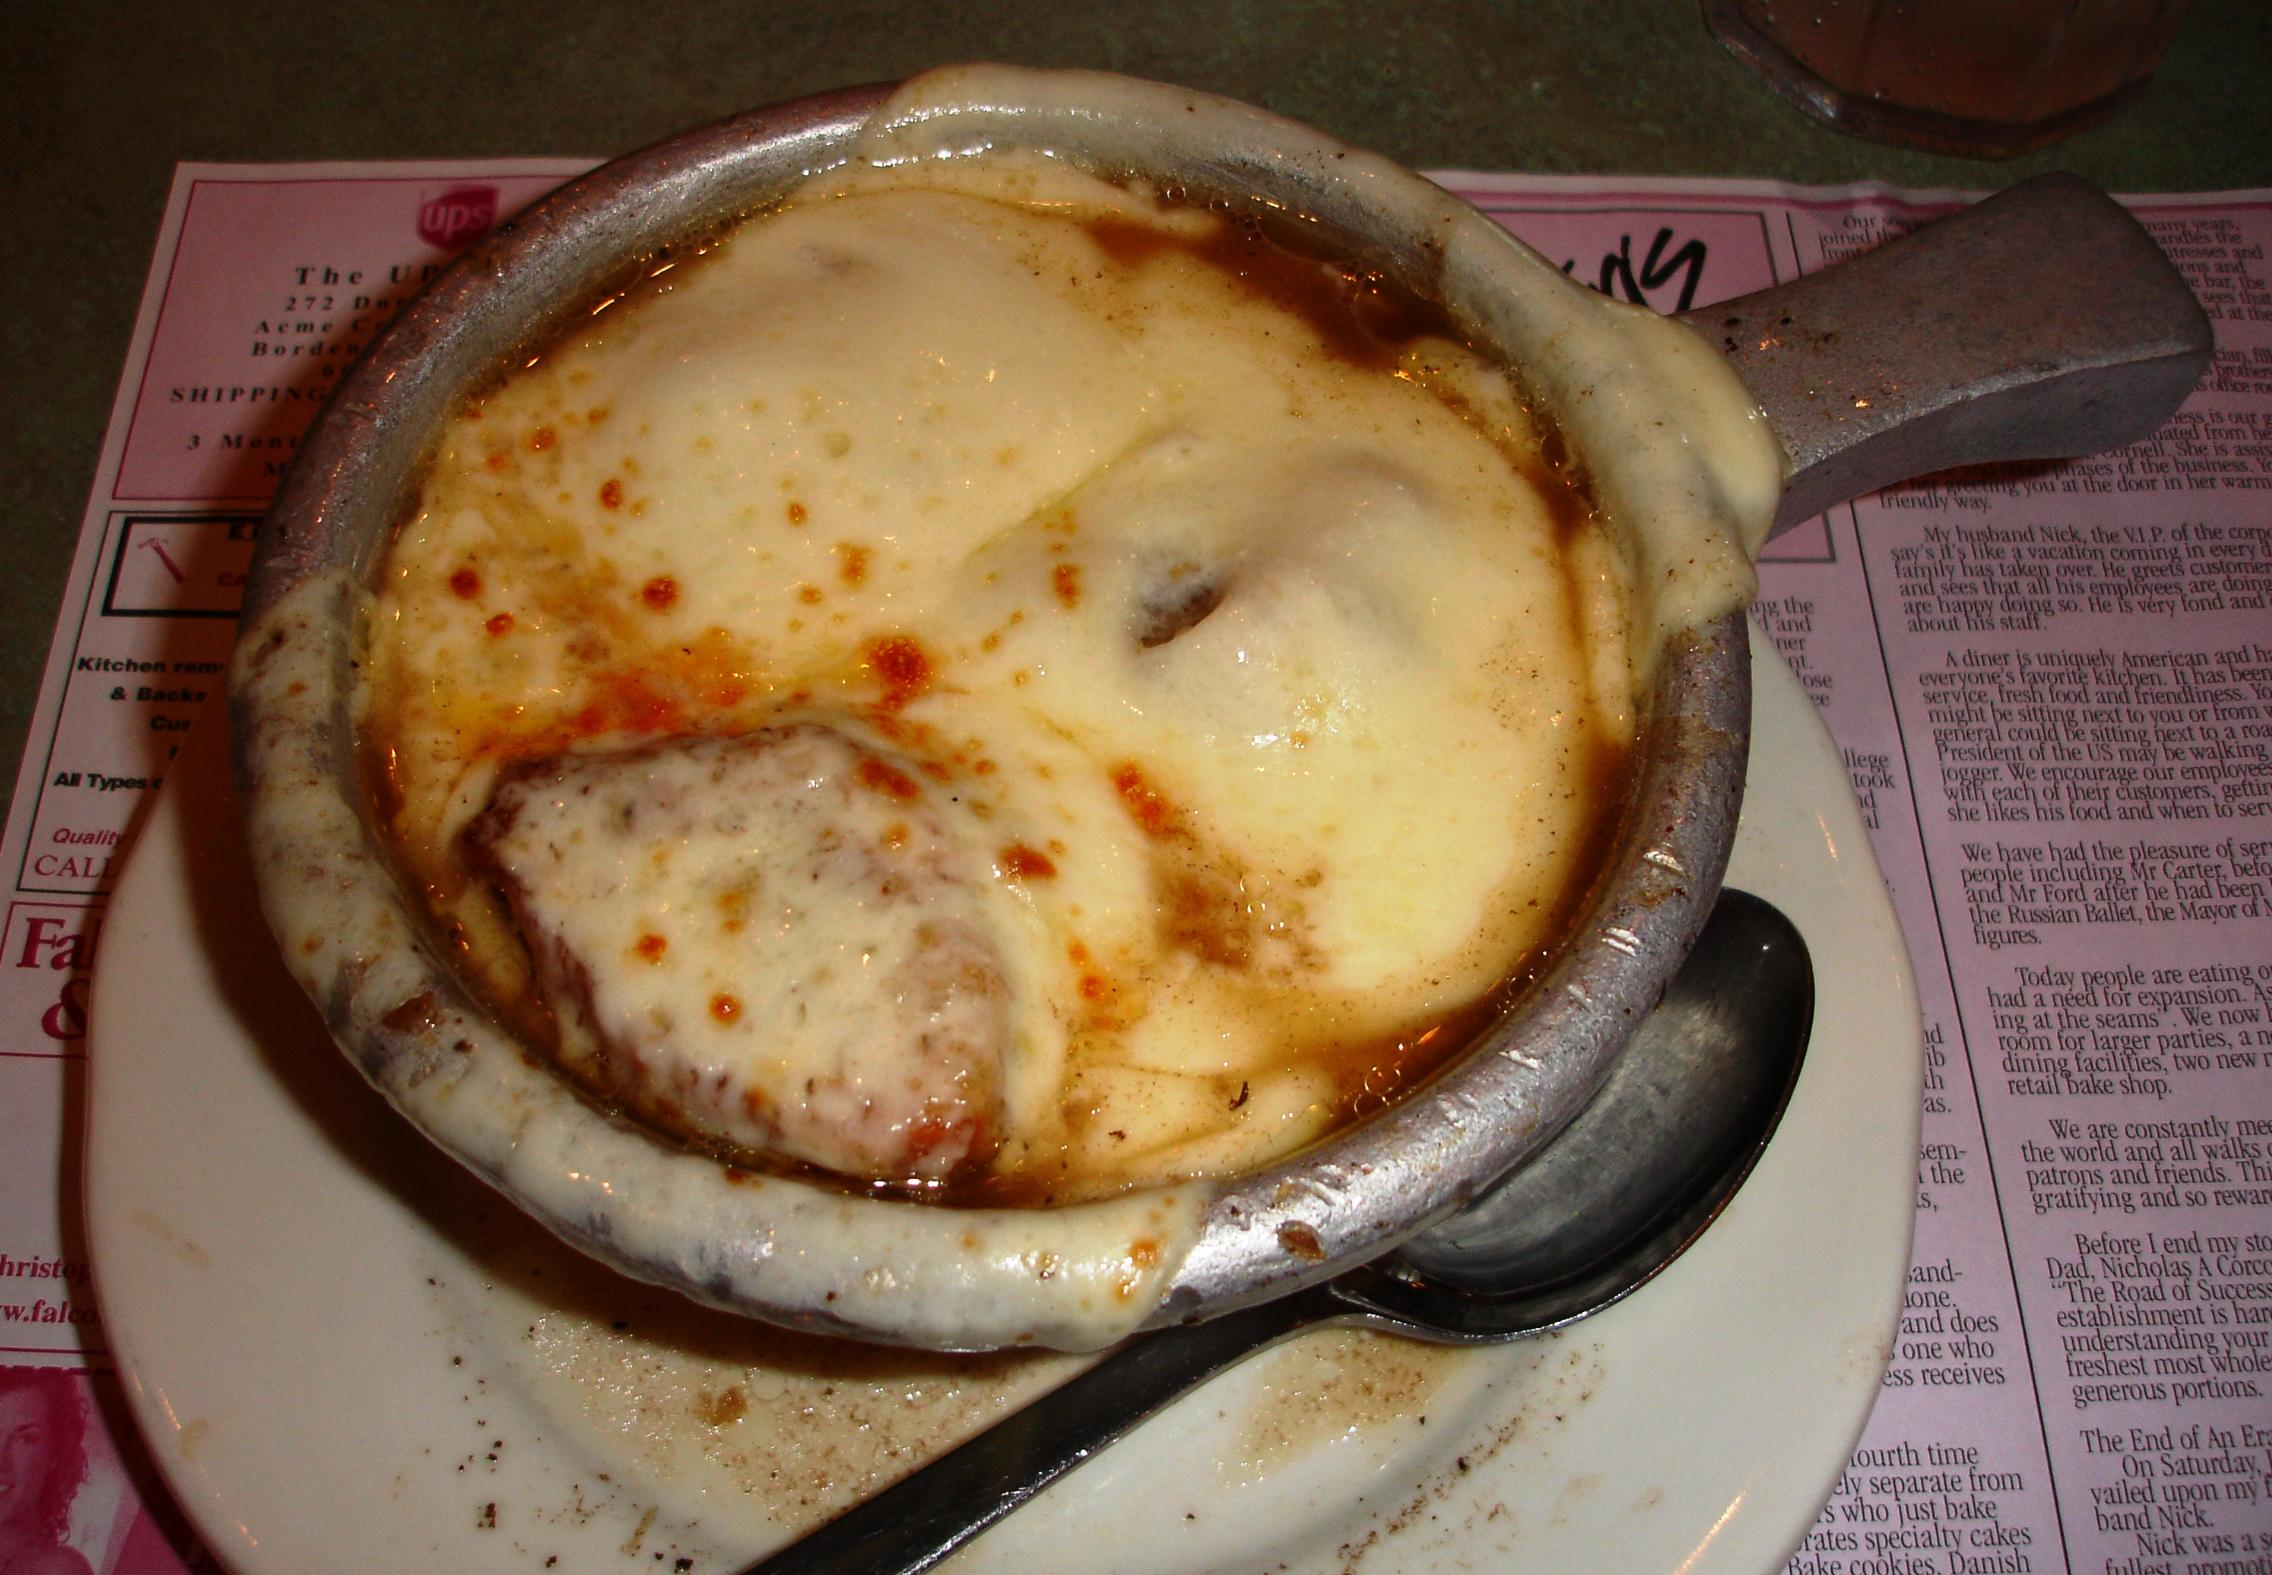 French onion soup looks good but it needs a good, rich onion broth, not this watery-tasting version.